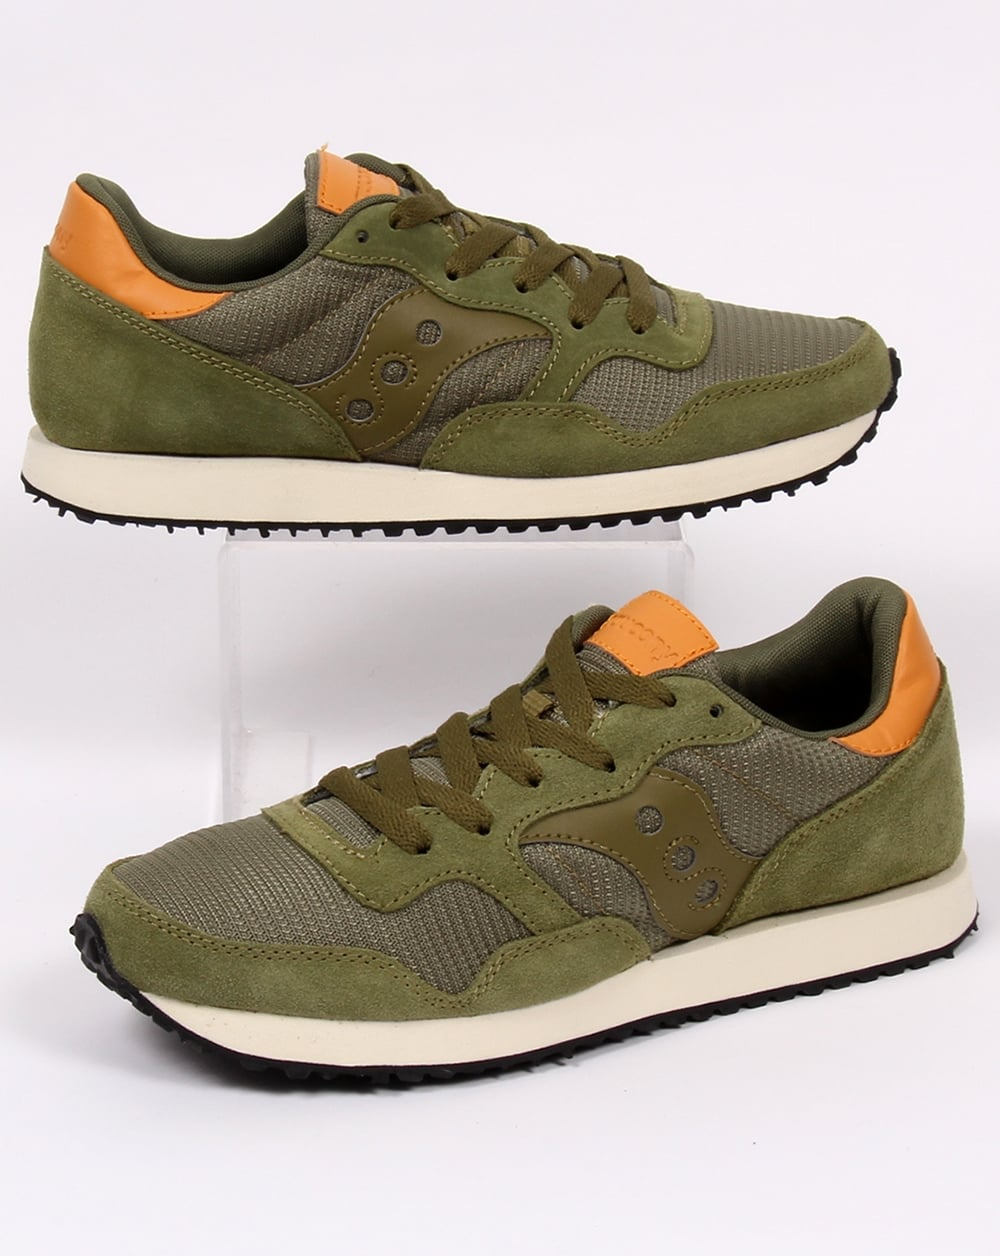 Saucony Dxn Trainers Olive Green, Men's